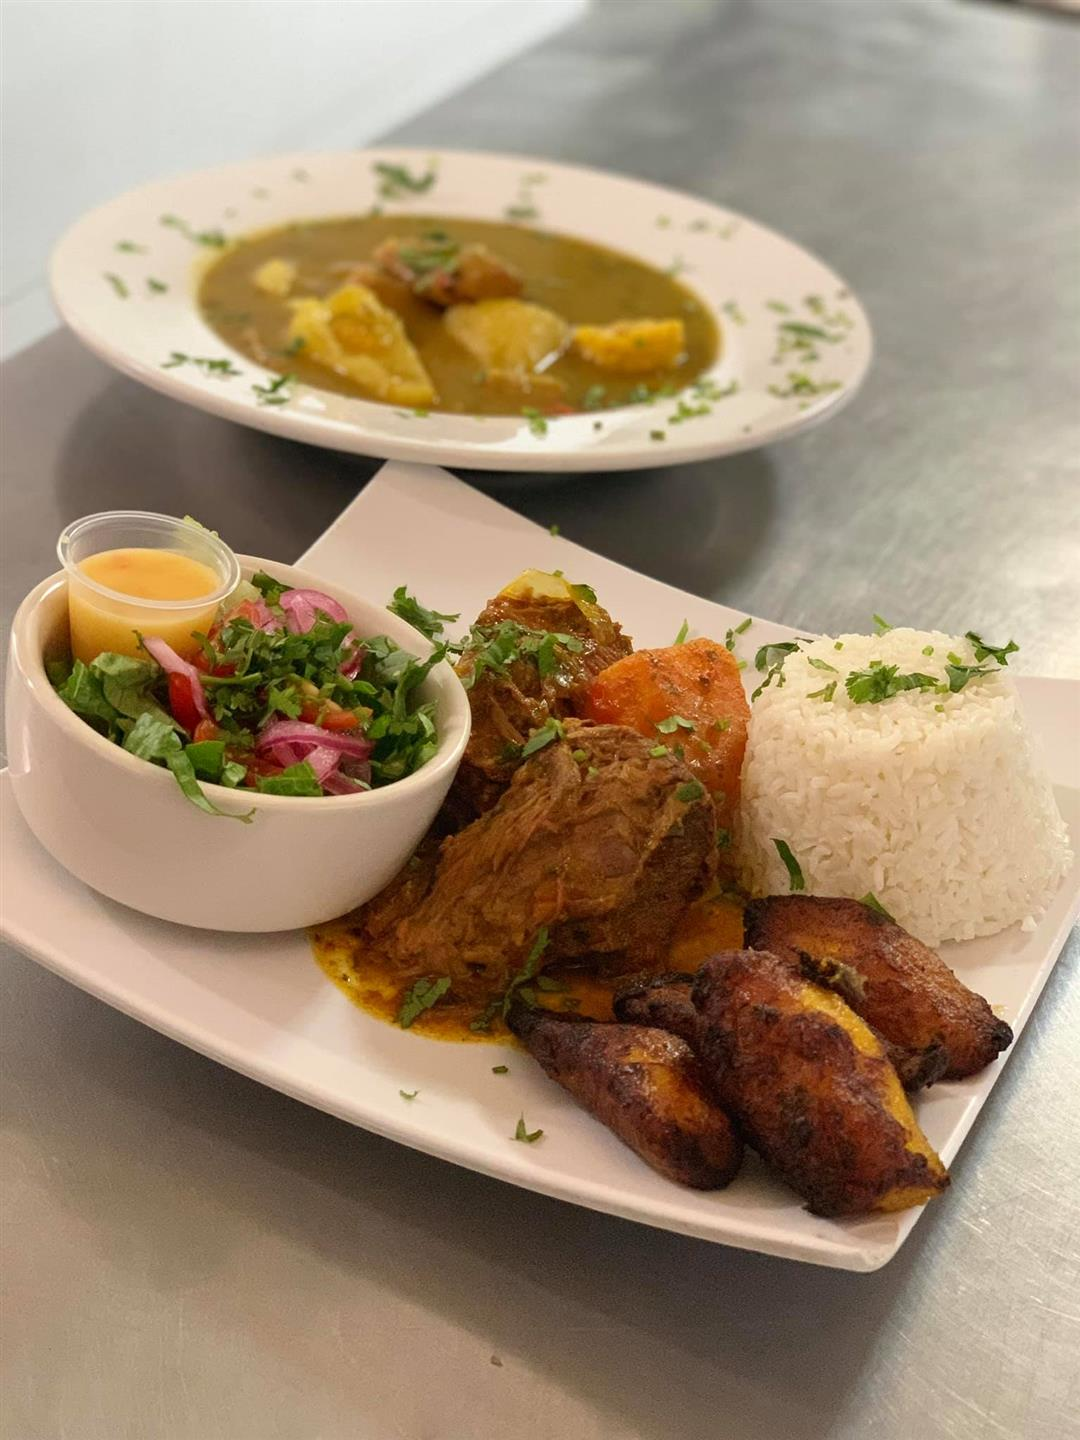 ROPA VIEJA PLATTER: Shredded beef with rice and fried plantains